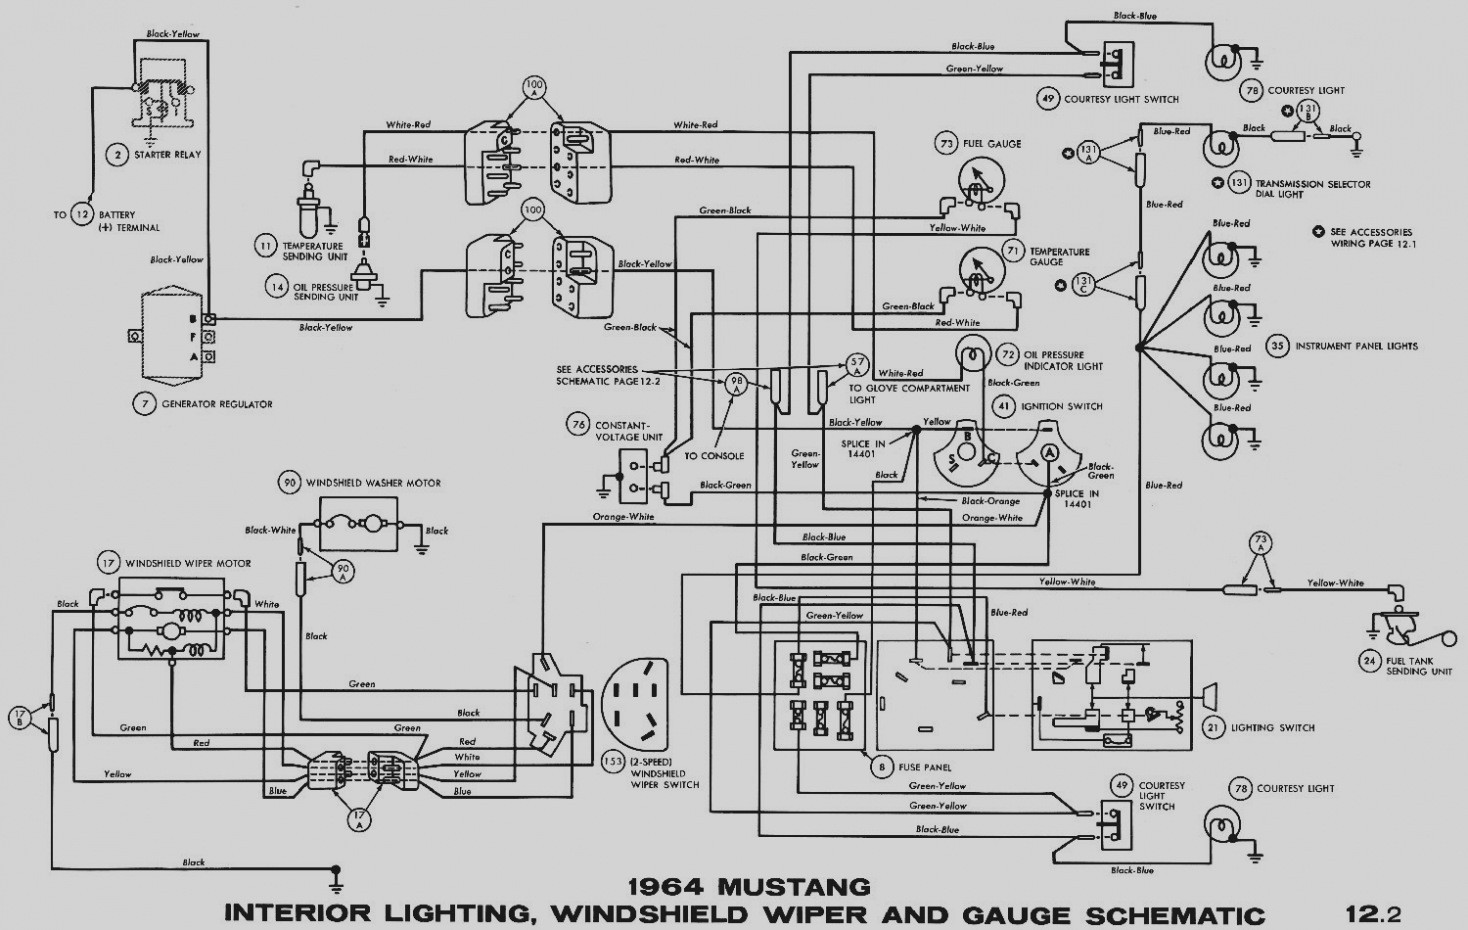 hight resolution of 1965 mustang wiper switch wiring diagram schematic diagrams rh ogmconsulting co